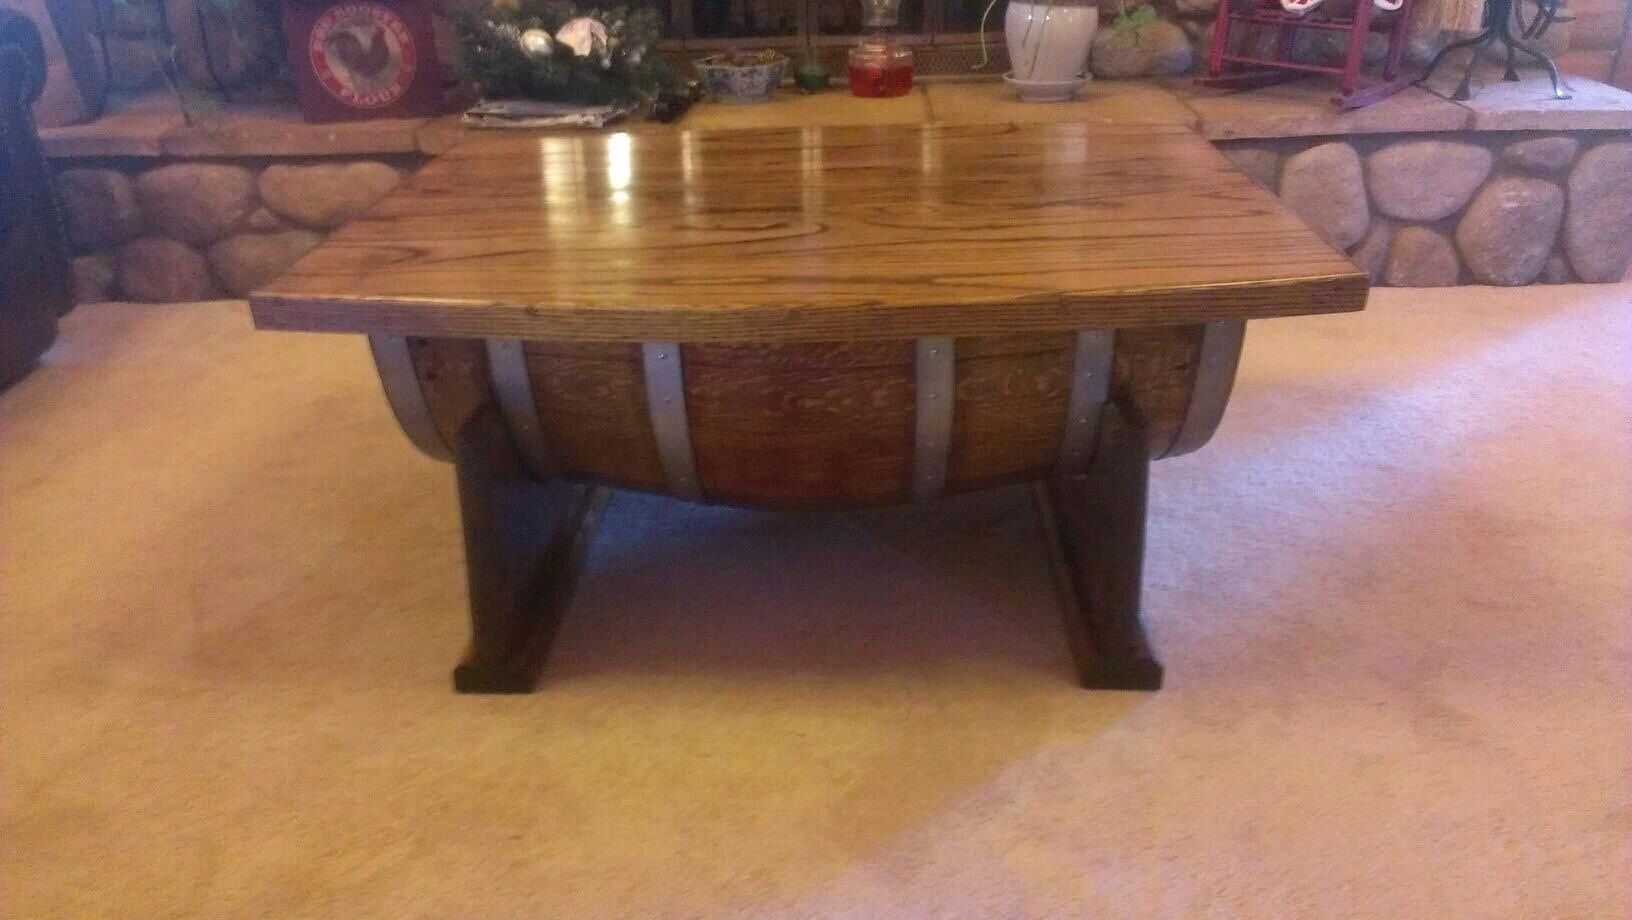 Coffee Table With Lid Our Custom Wine Barrel Coffee Table The Lid Opens For